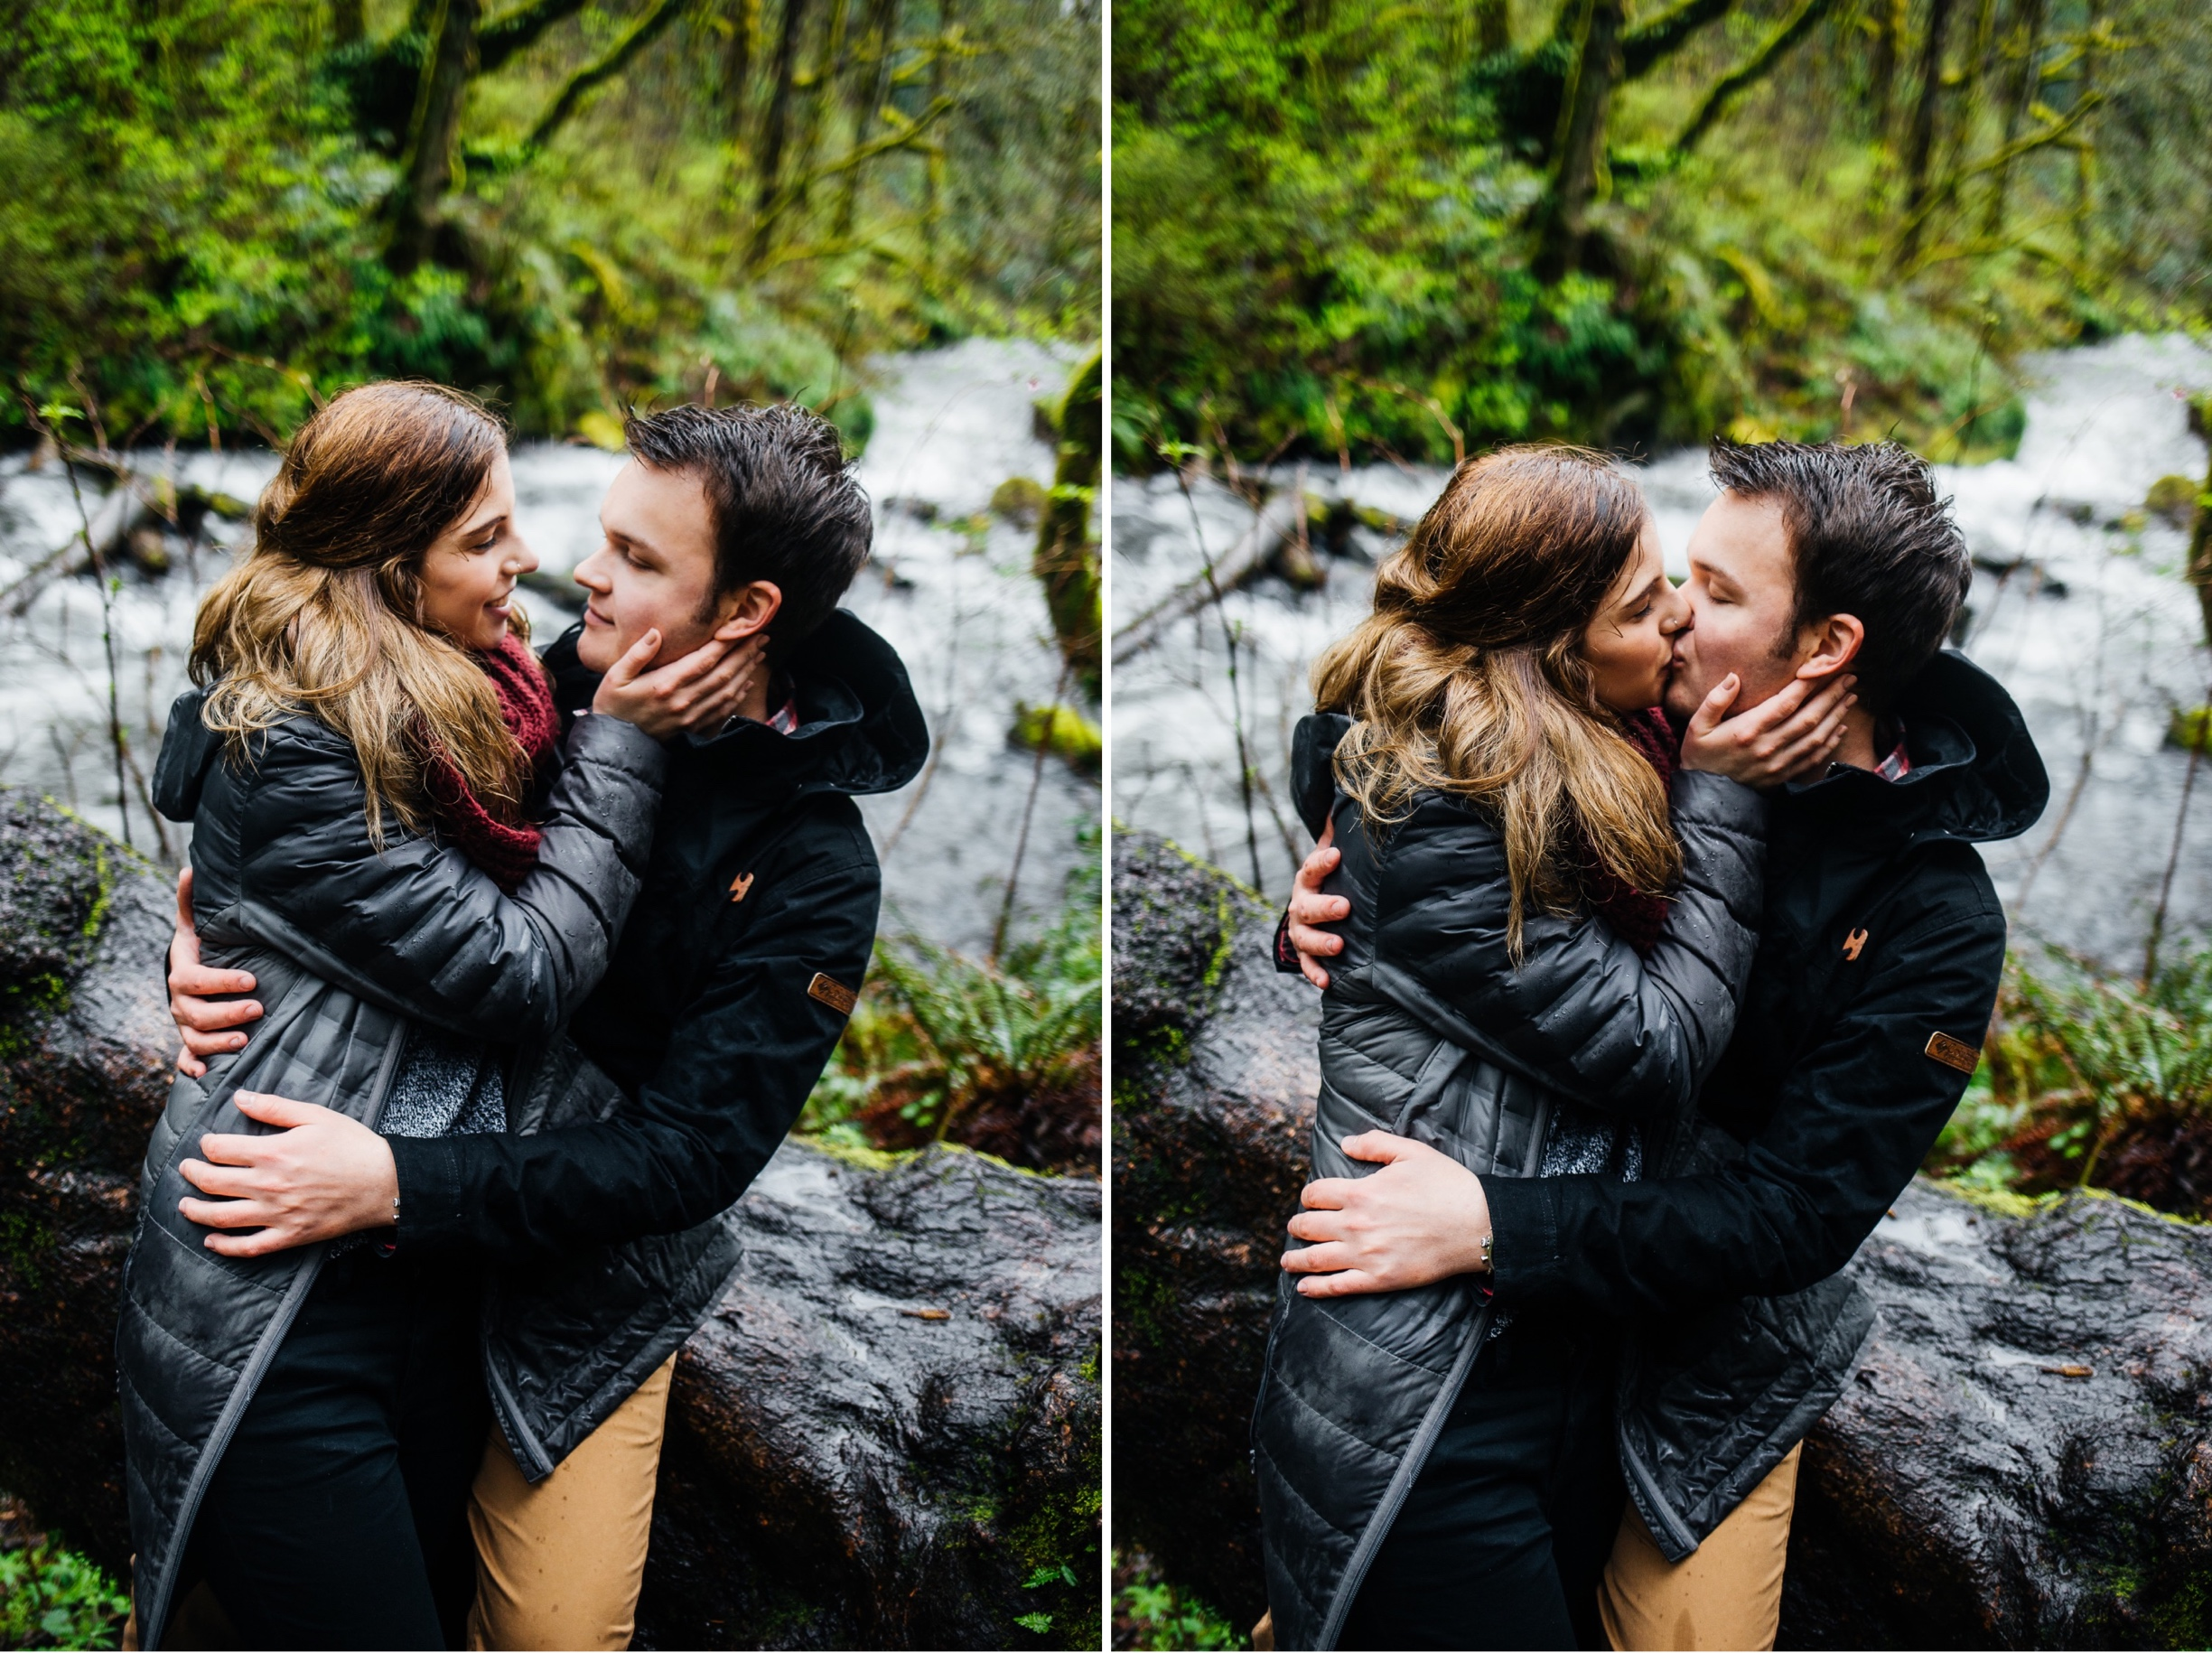 Waterfall Engagement Photos at the Columbia River Gorge Portland, Engaged, Engagement, She Said Yes, He Put a Ring on It, How He Asked, Bridal Veil Falls Oregon, Bridal Veil Falls Engagement Photos, Columbia River Gorge Engagement Photos, Portland Waterfall, Portland Oregon Engagement Photos, Oregon Engagement Photographer, Portland Engagement Photographer, Portland Engagement Photography, Where to Take Engagement Photos in Portland, What to Wear for Engagement Photos, Destination Photographer